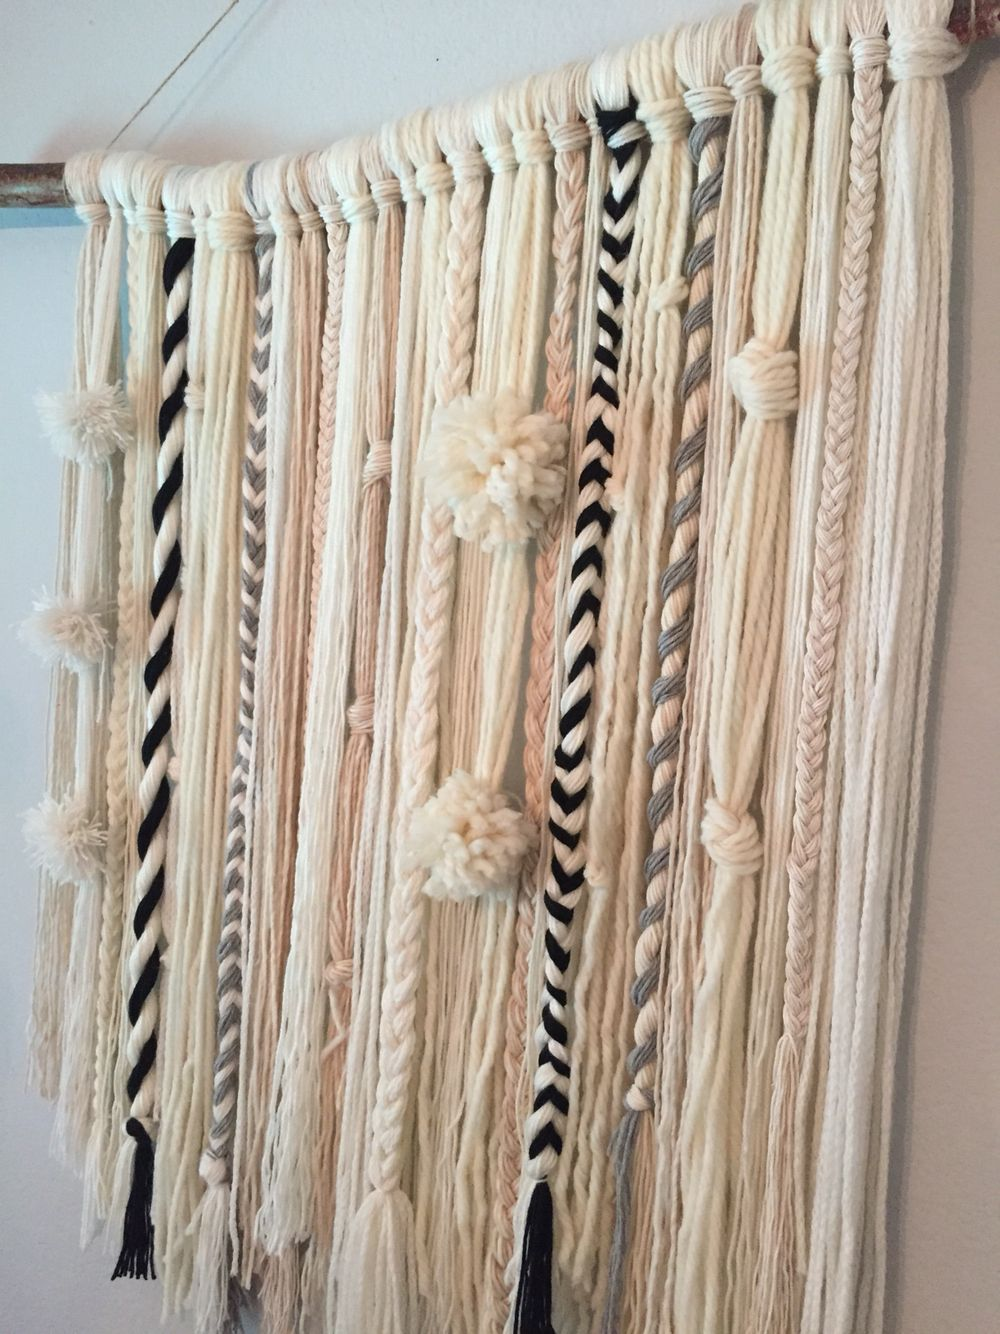 Diy Yarn Wall Hanging My Creations Pinterest Yarn